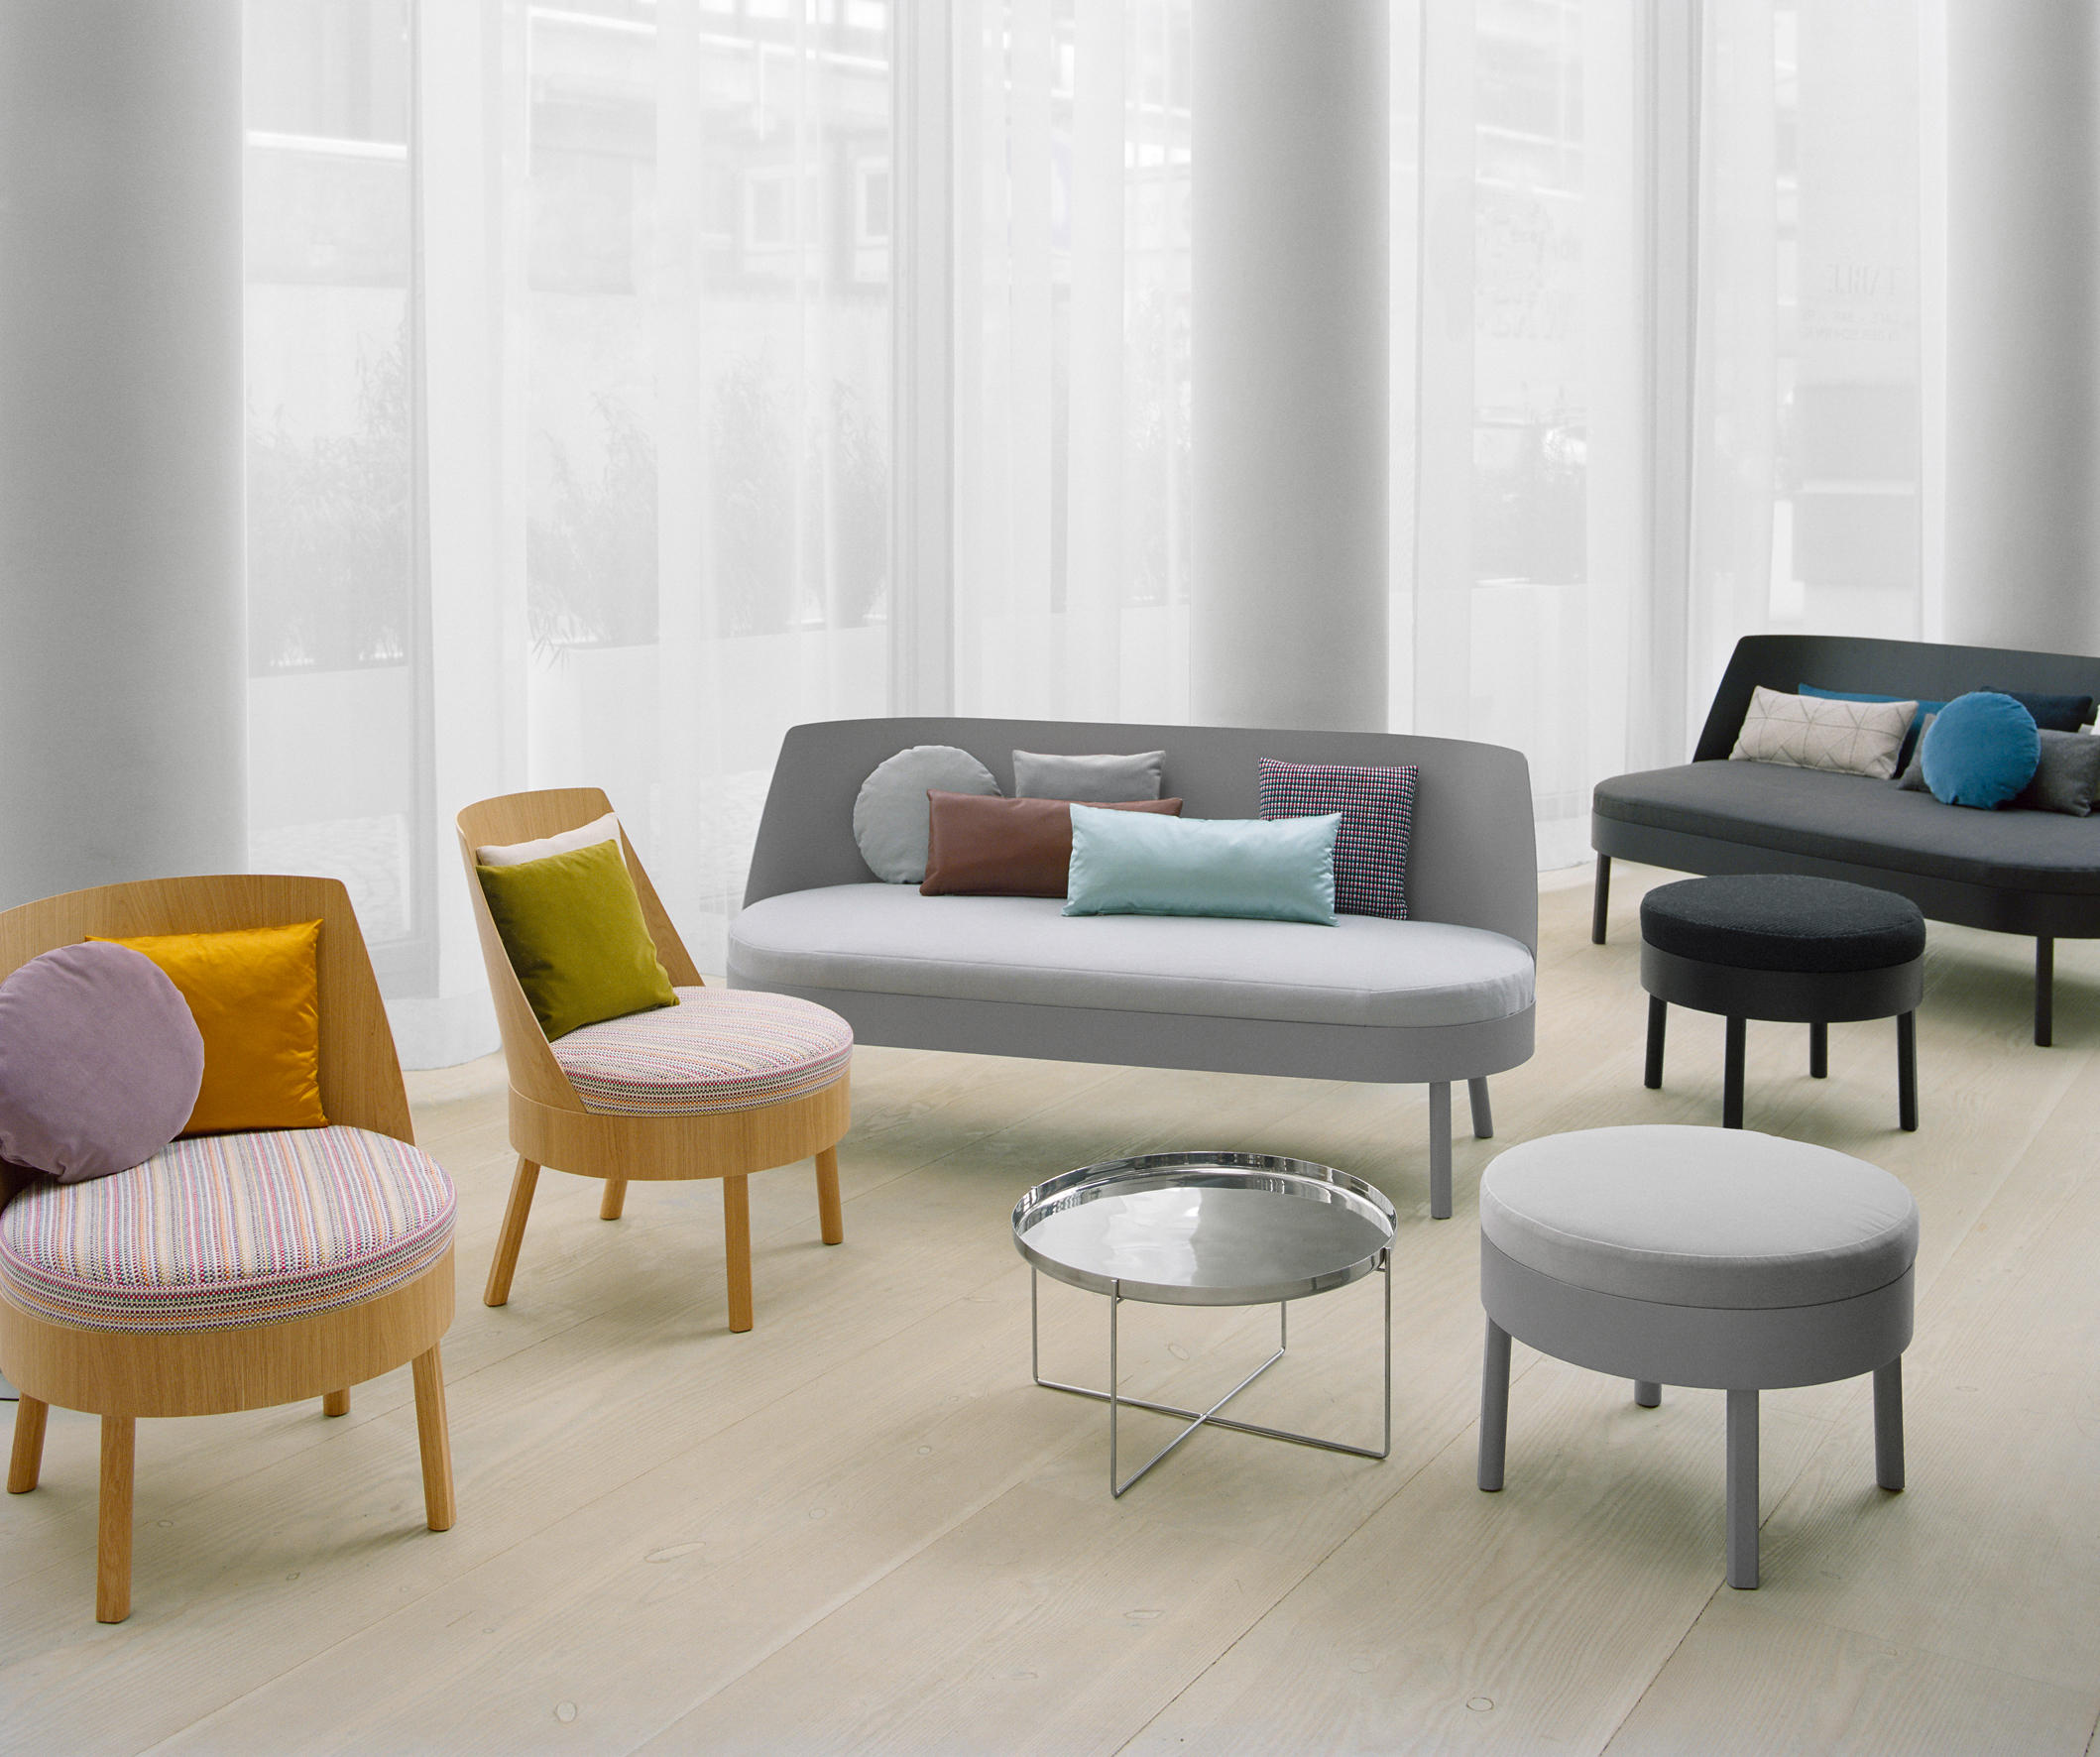 BESSY Lounge chairs from e15